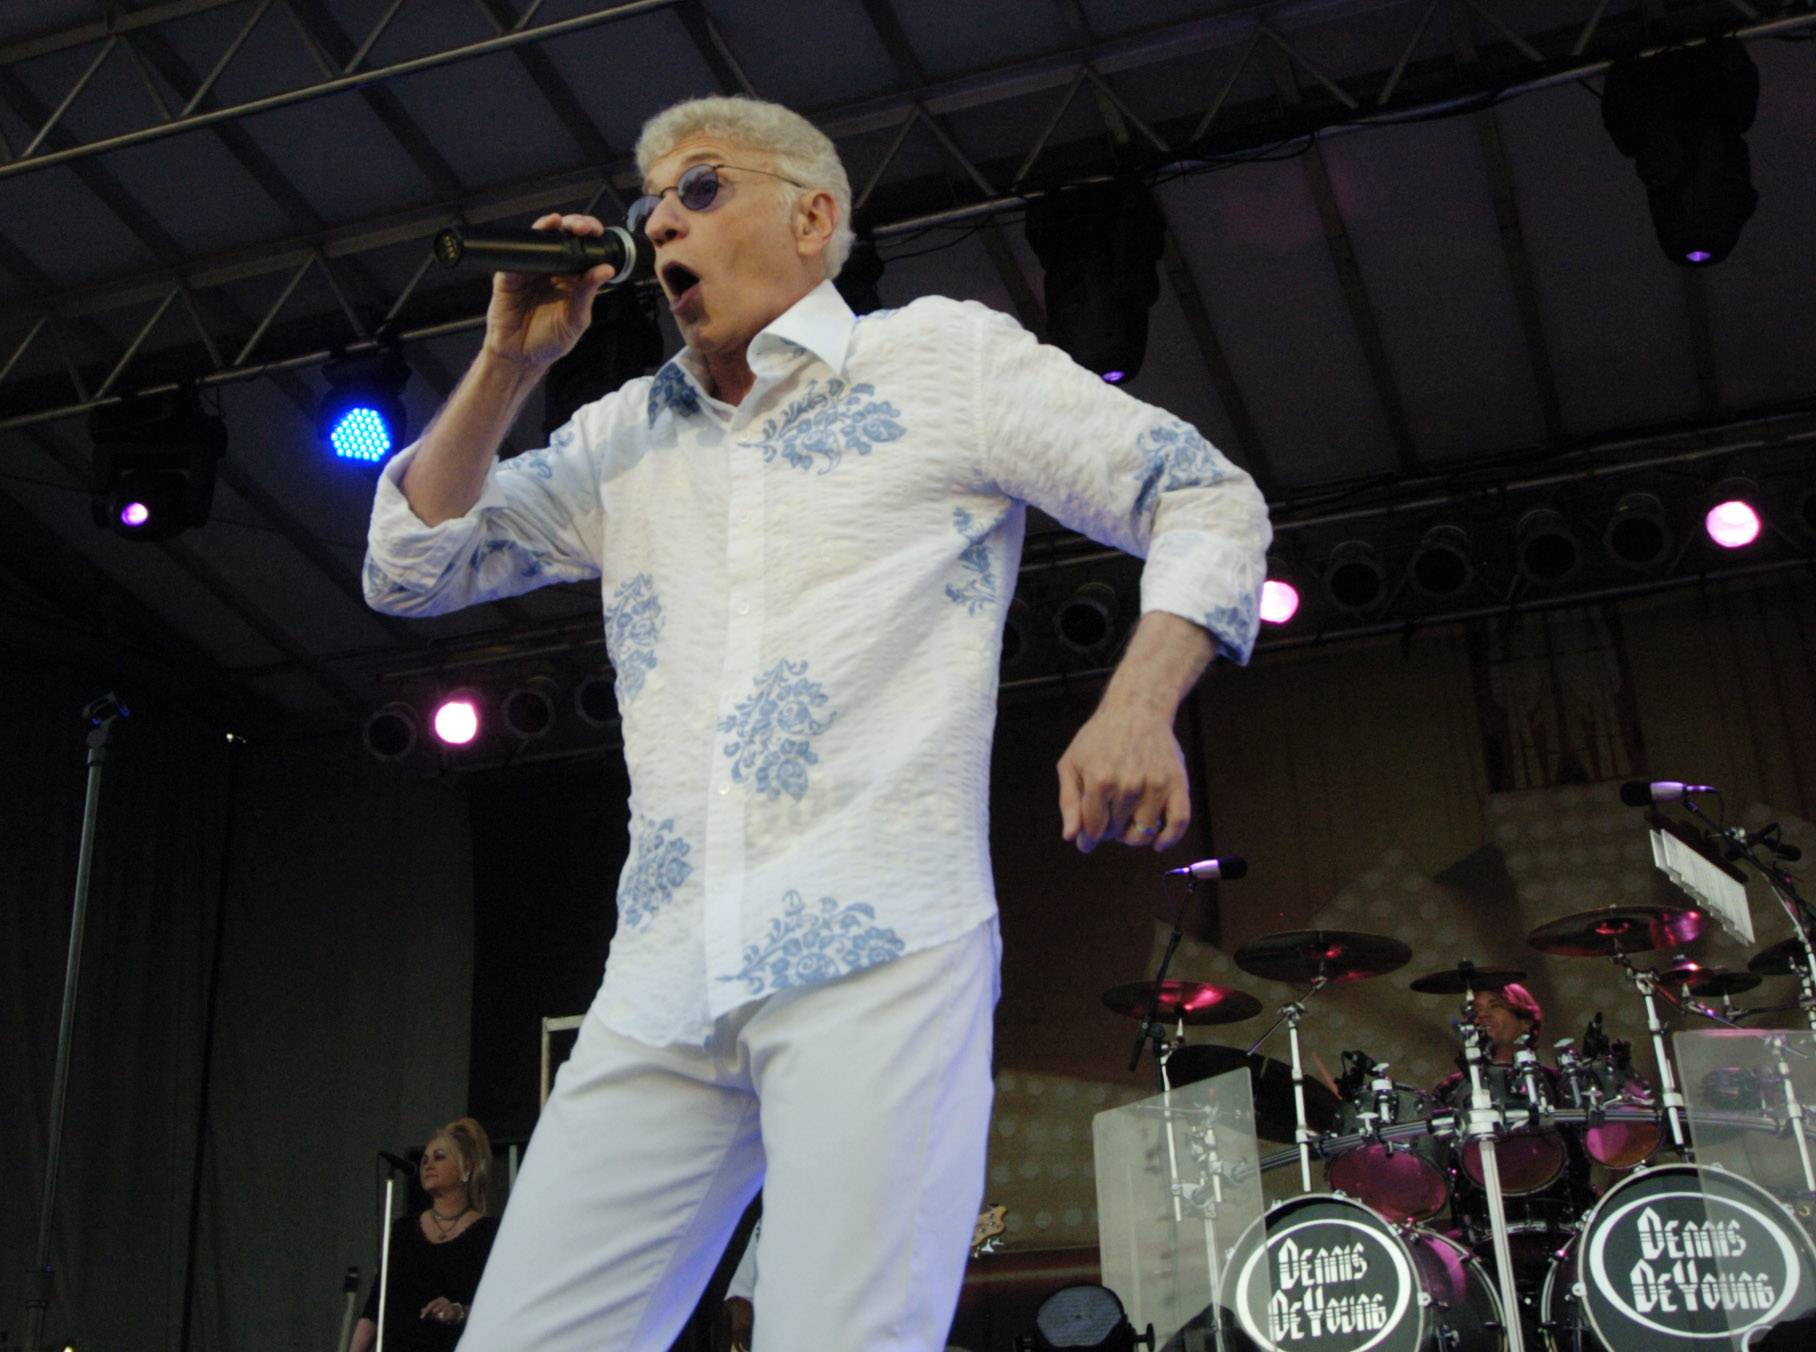 Dennis DeYoung, founding member of Styx, will be part of the Fourth of July entertainment lineup in Elgin.